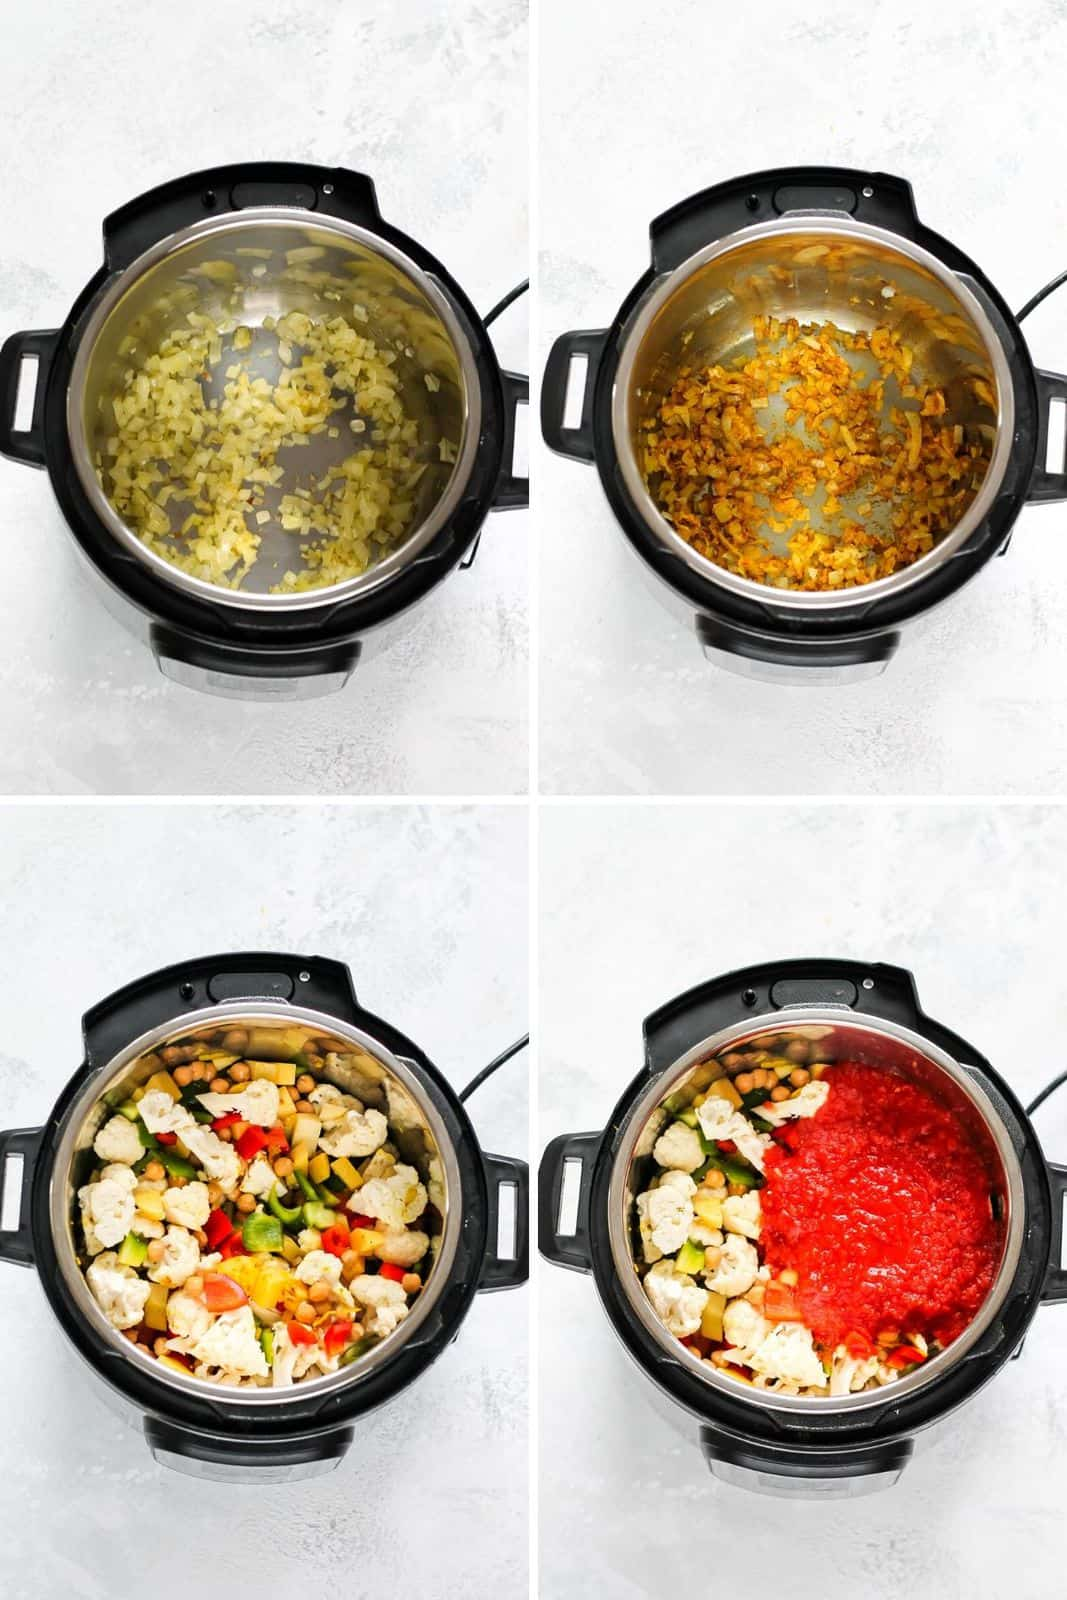 photo collage of chickpea curry being prepared in an instant pot